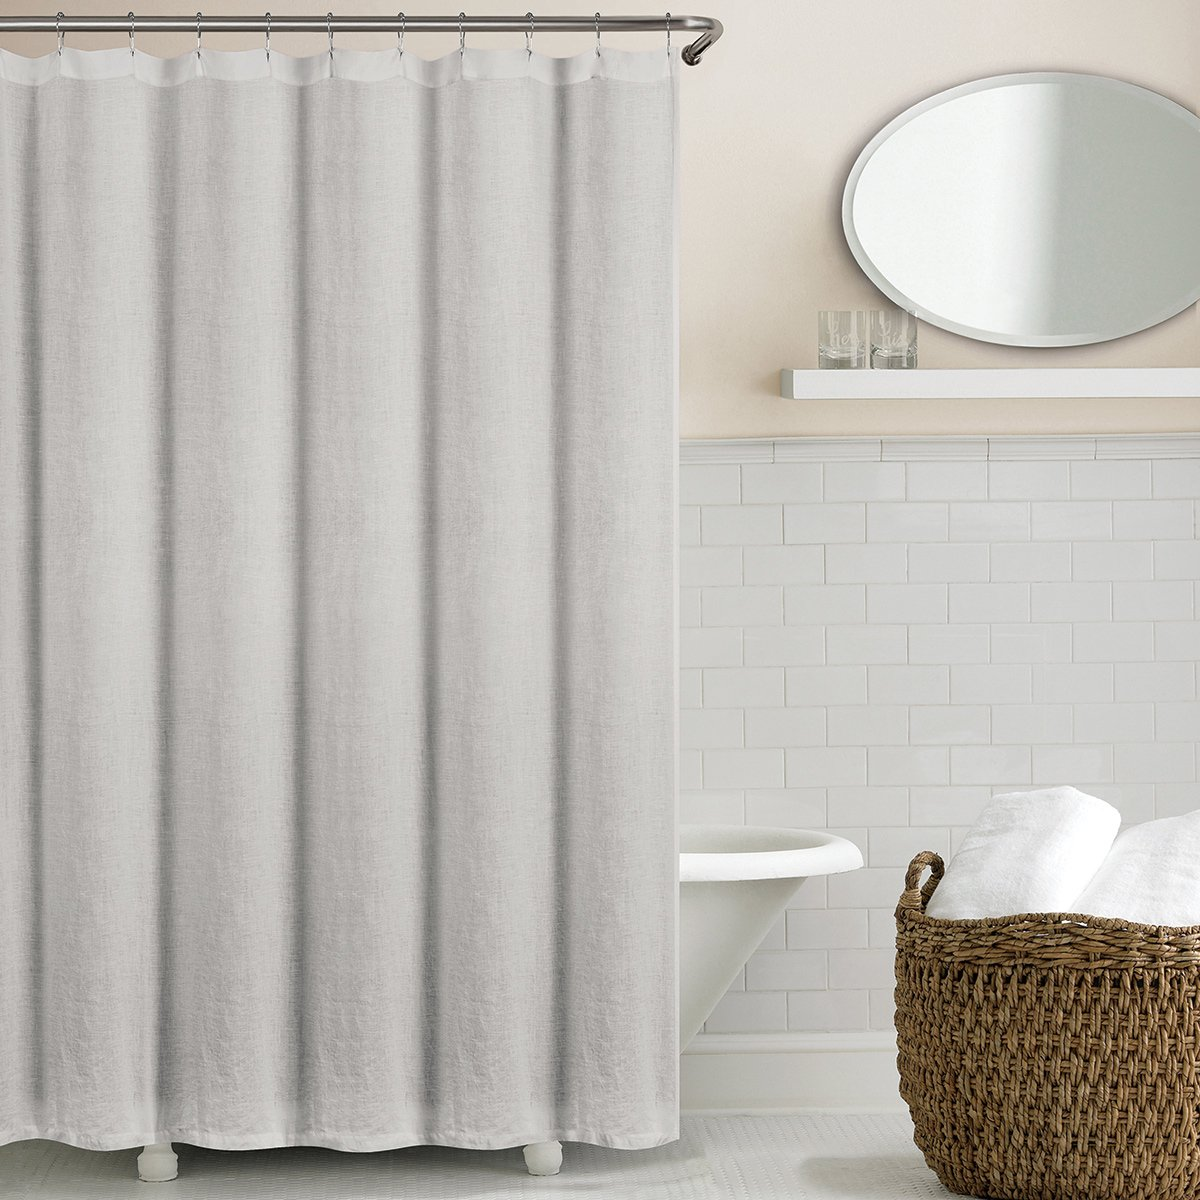 Echelon Home Washed Belgian Linen Shower Curtain, Silver